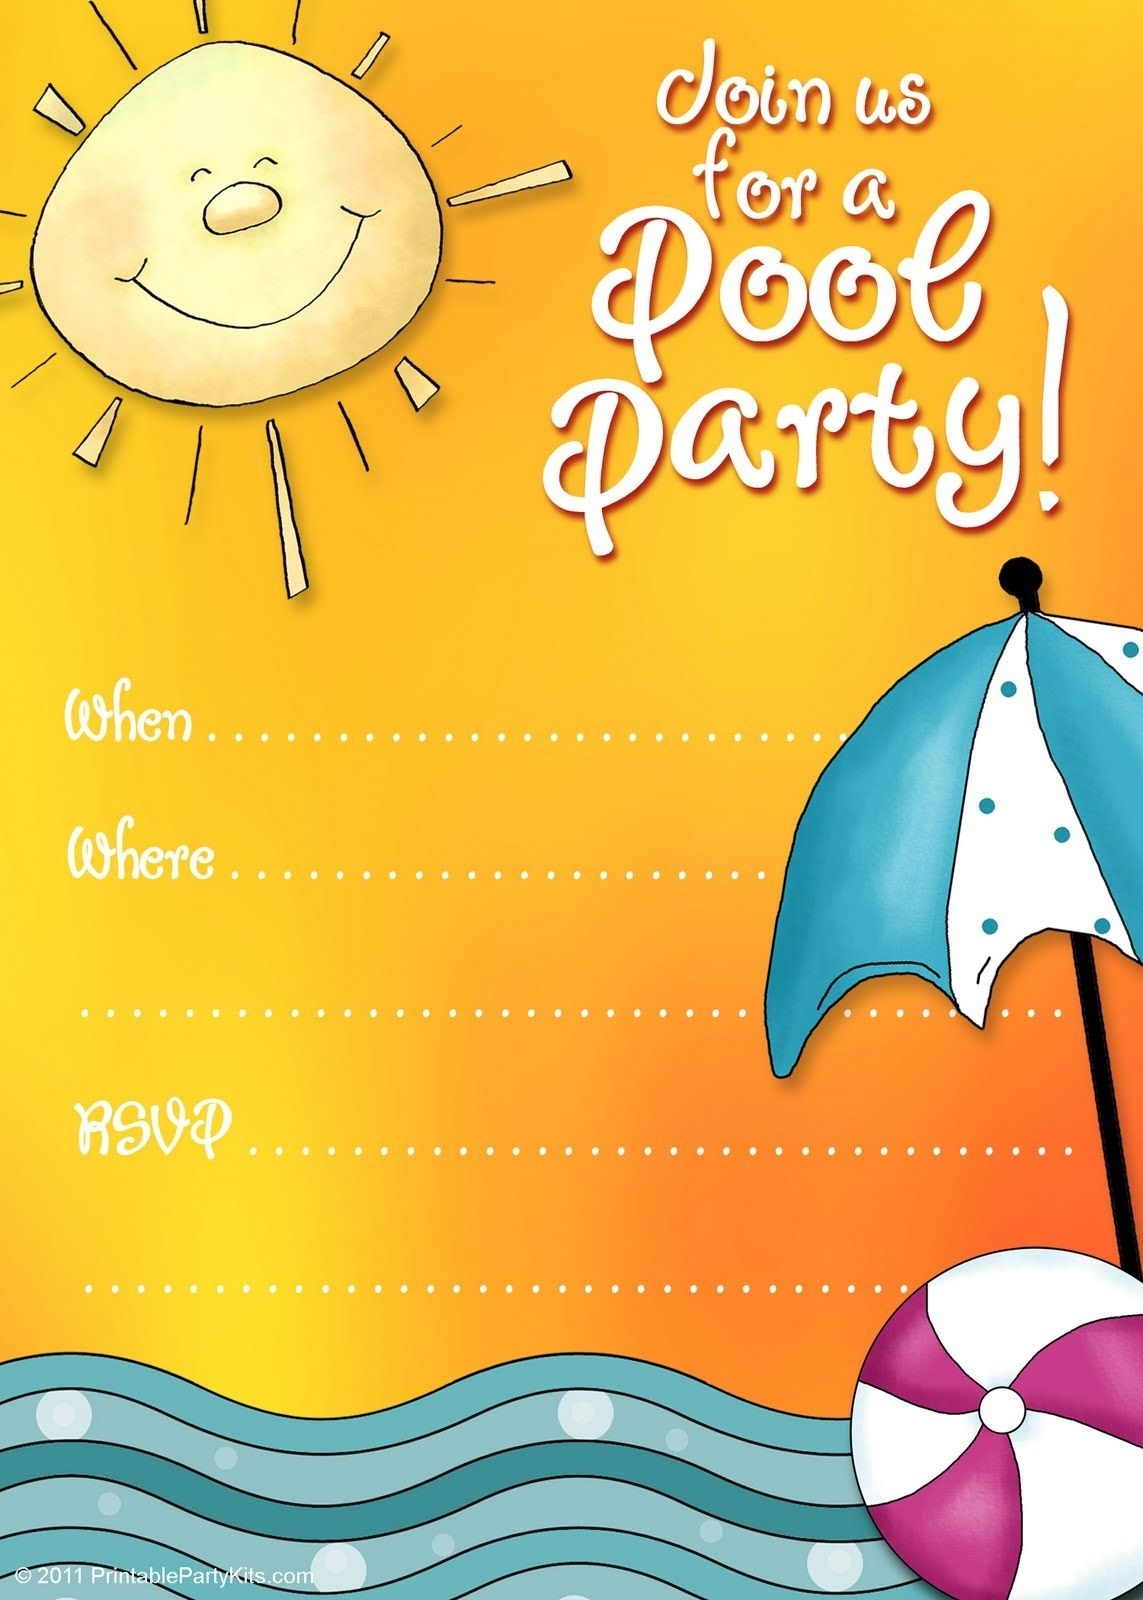 Free Printable Party Invitations: Summer Pool Party Invites | Adhd - Free Printable Pool Party Invitation Cards